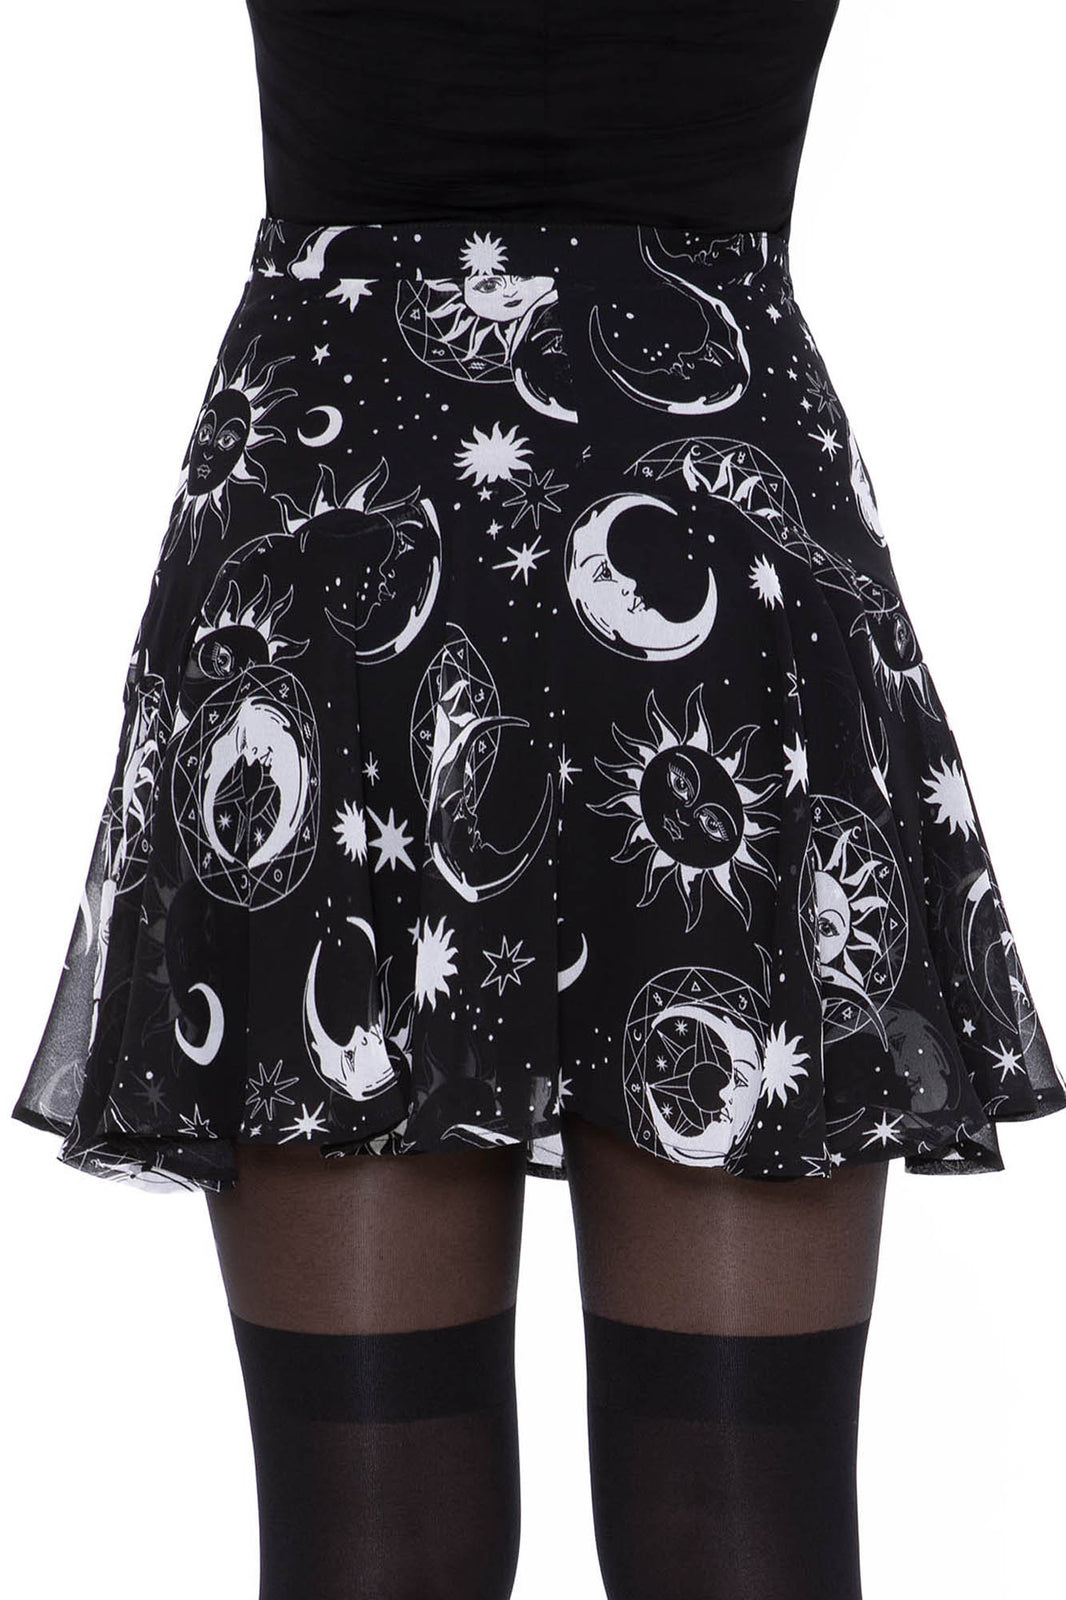 Astral Light Skater Skirt